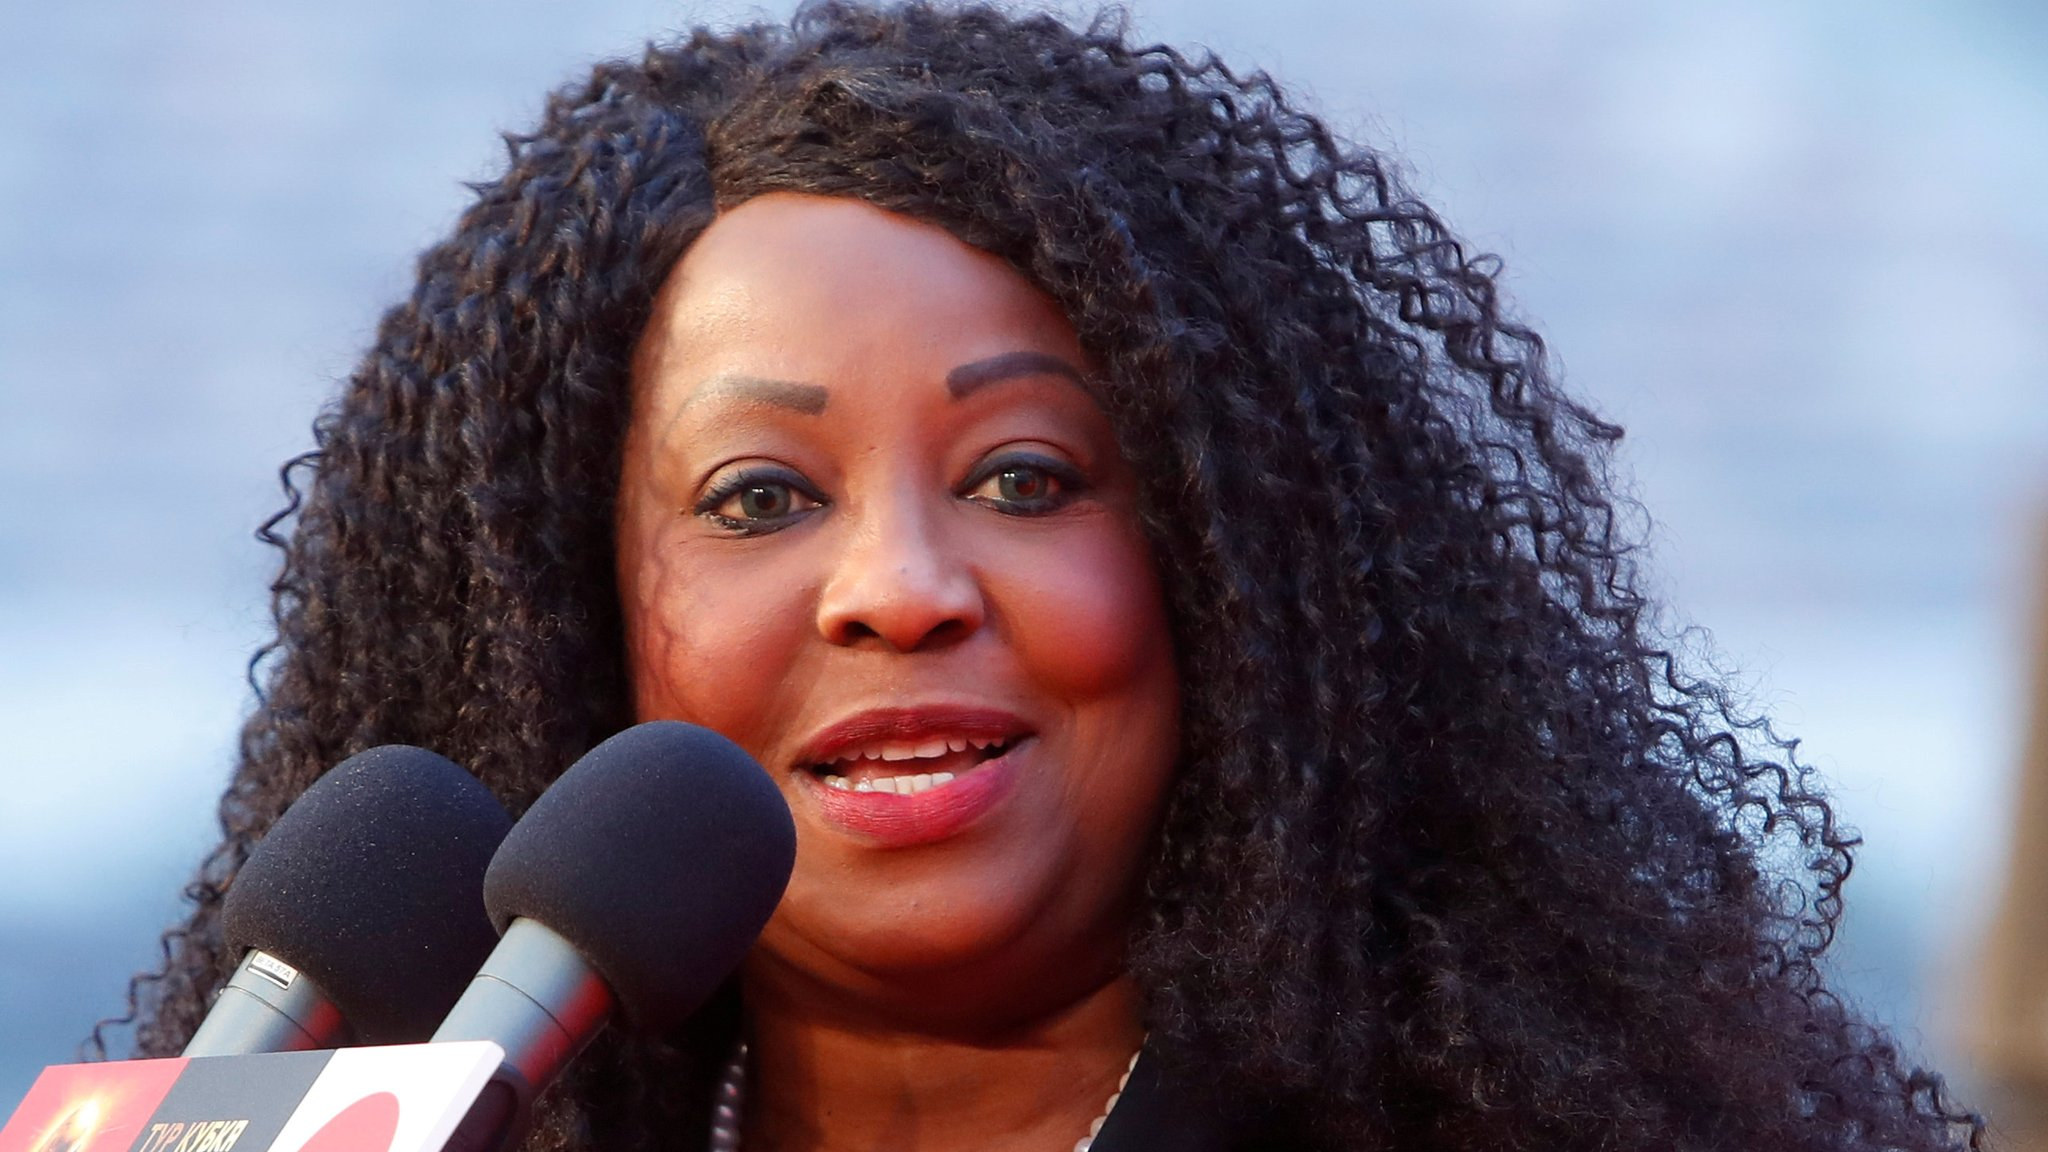 'Some people don't think a black woman should lead Fifa'